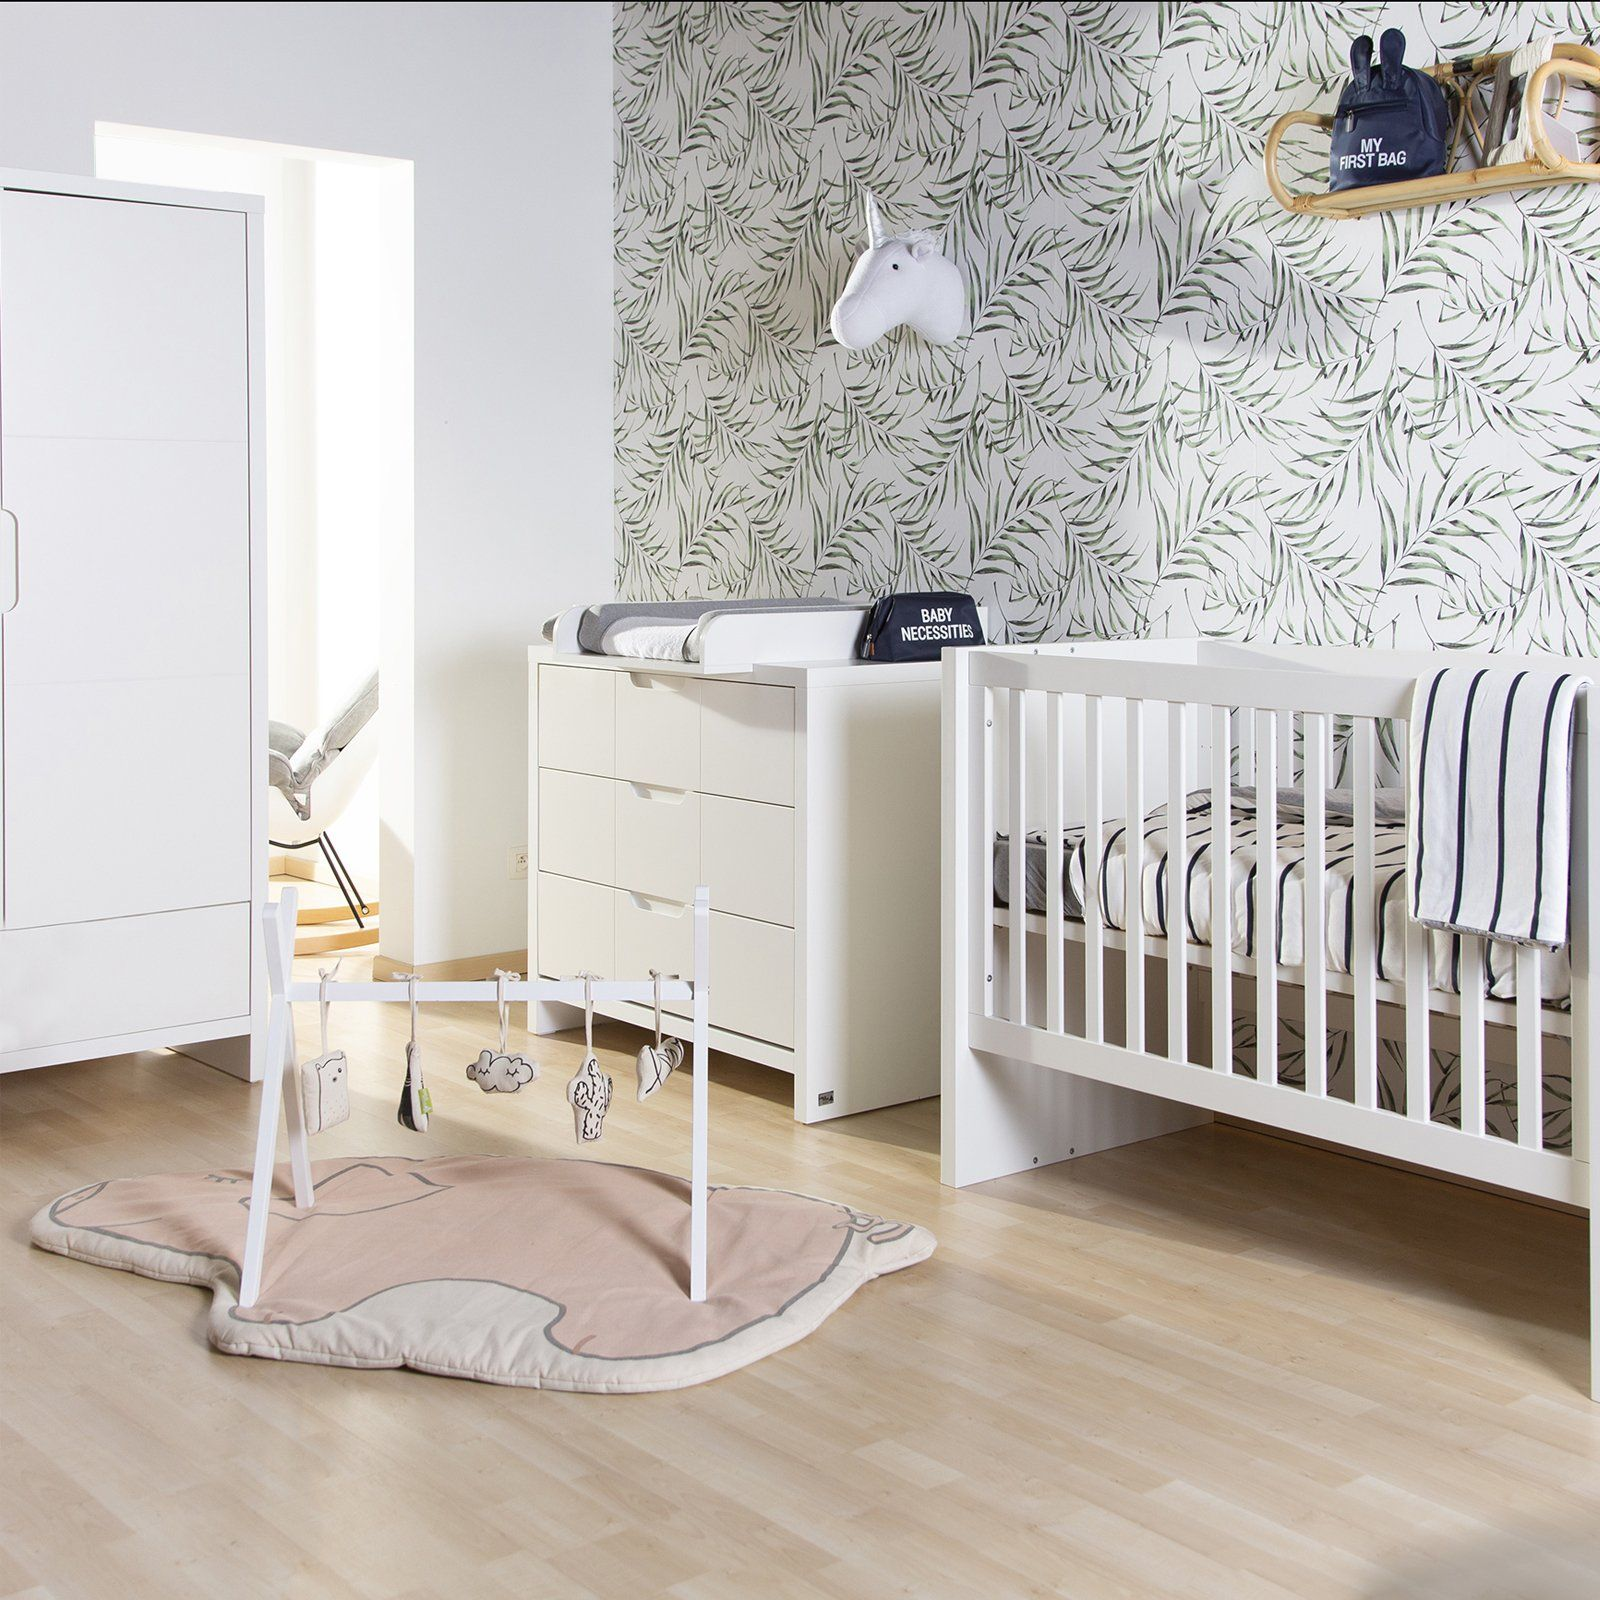 Quadro 3 piece - Cot Bed, Dresser and Wardrobe Set Furniture Childhome